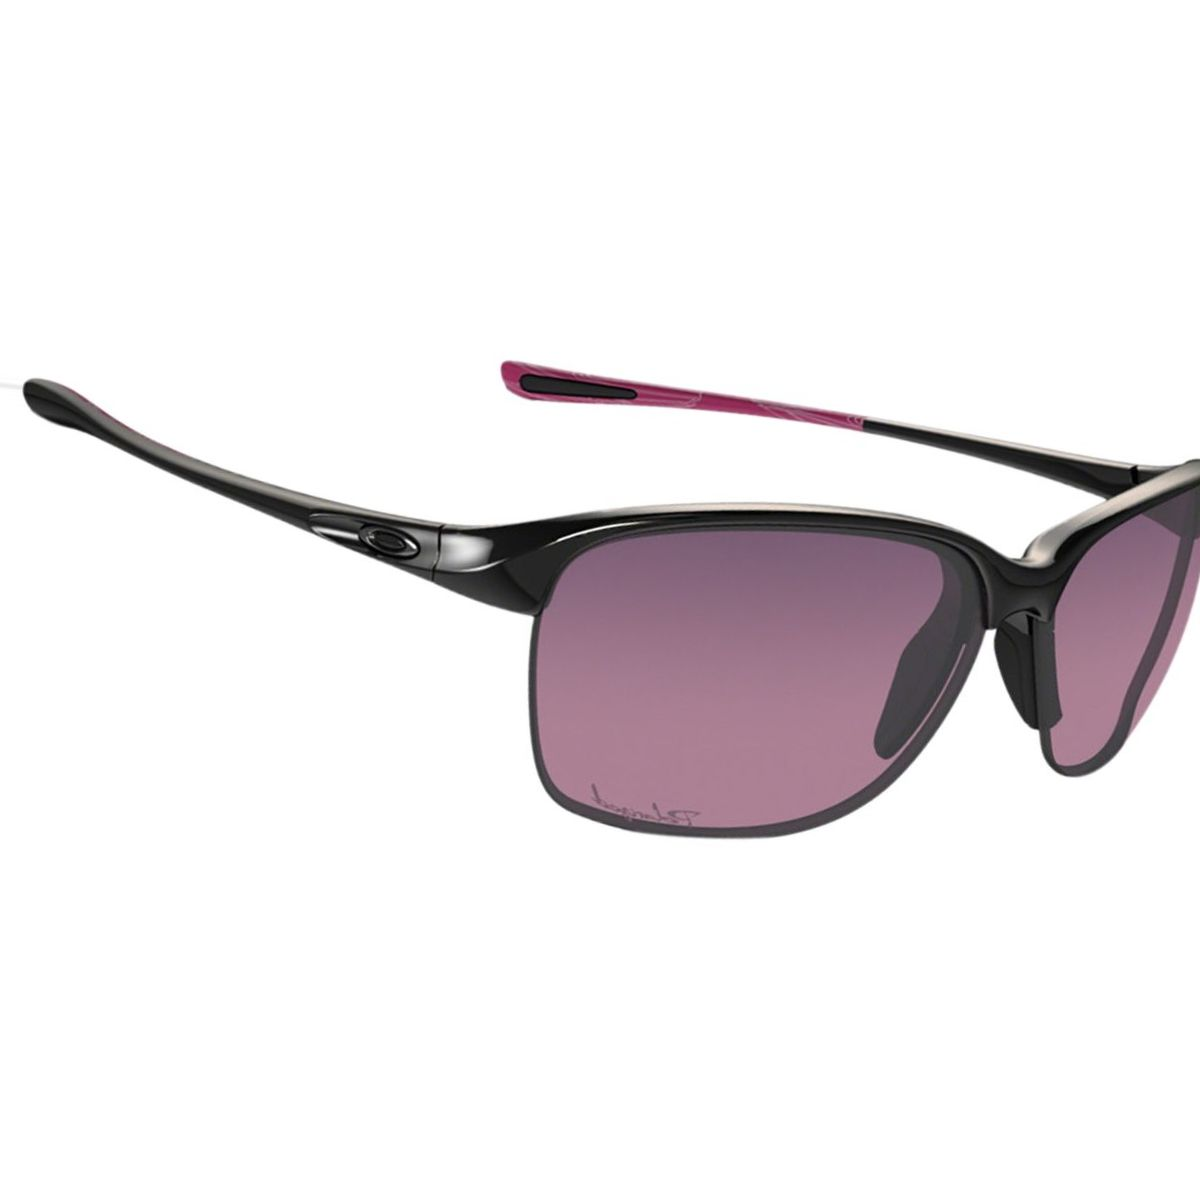 Oakley Unstoppable Polarized Sunglasses - Women's